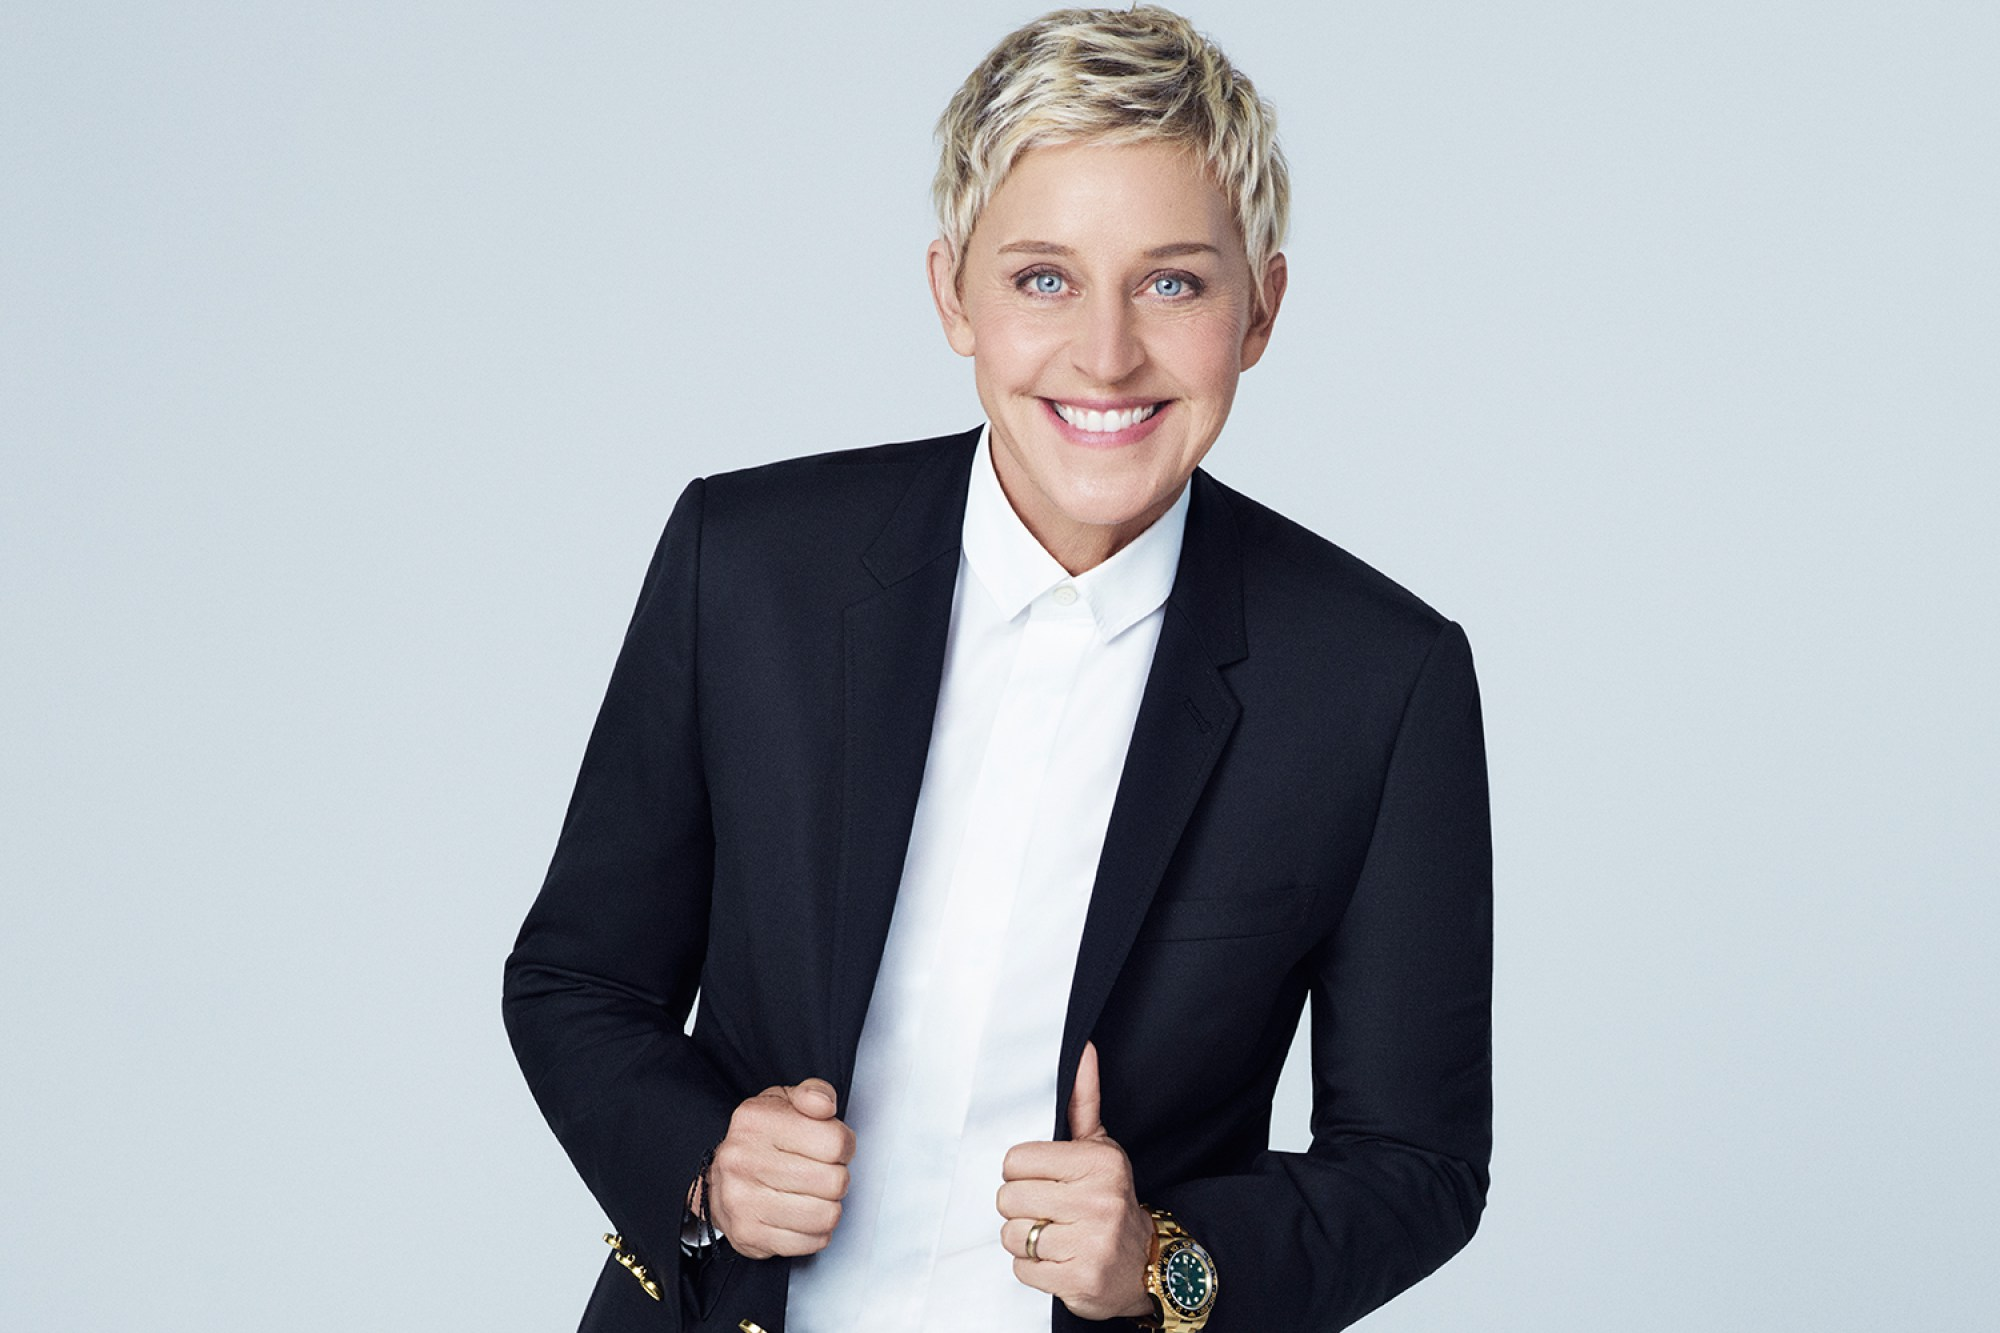 Ellentube is the video destination for Ellen. Find the best and exclusive show content, user submitted videos, celebrity interviews, games, giveaways, and more.